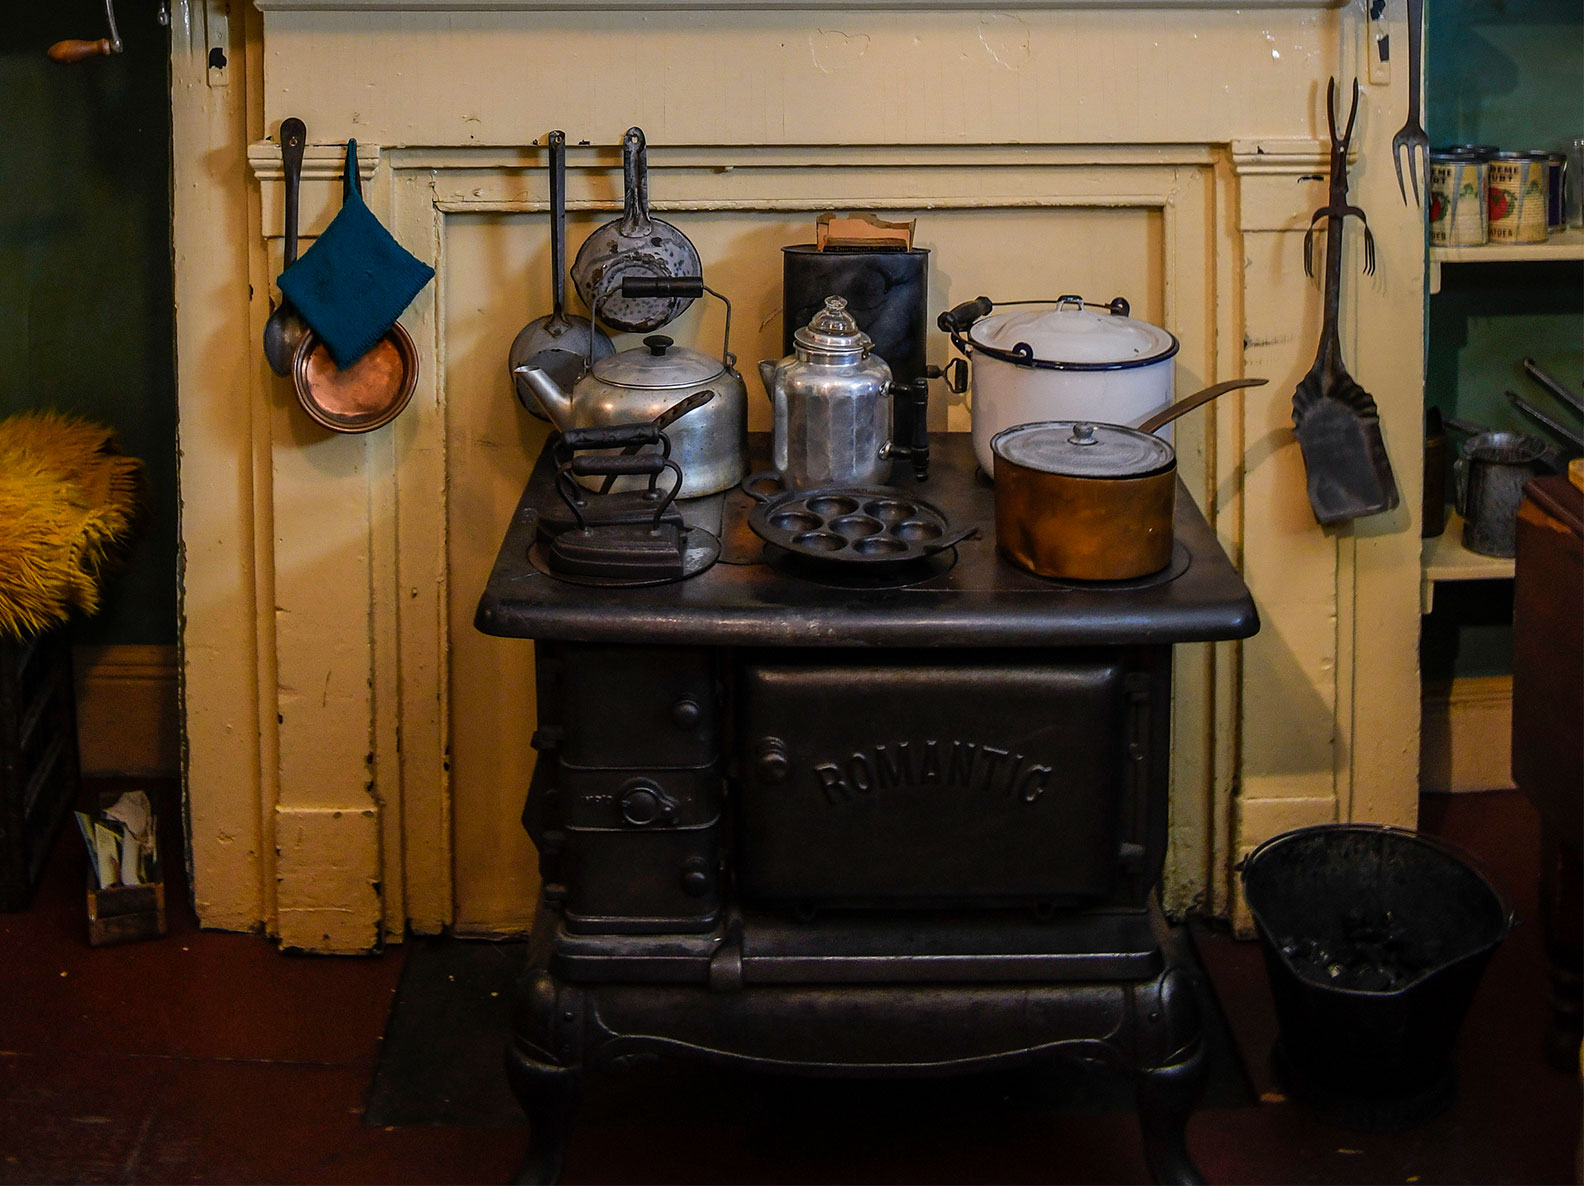 Coal stove covered with pots, kettles, and irons inside a recreated tenement apartment